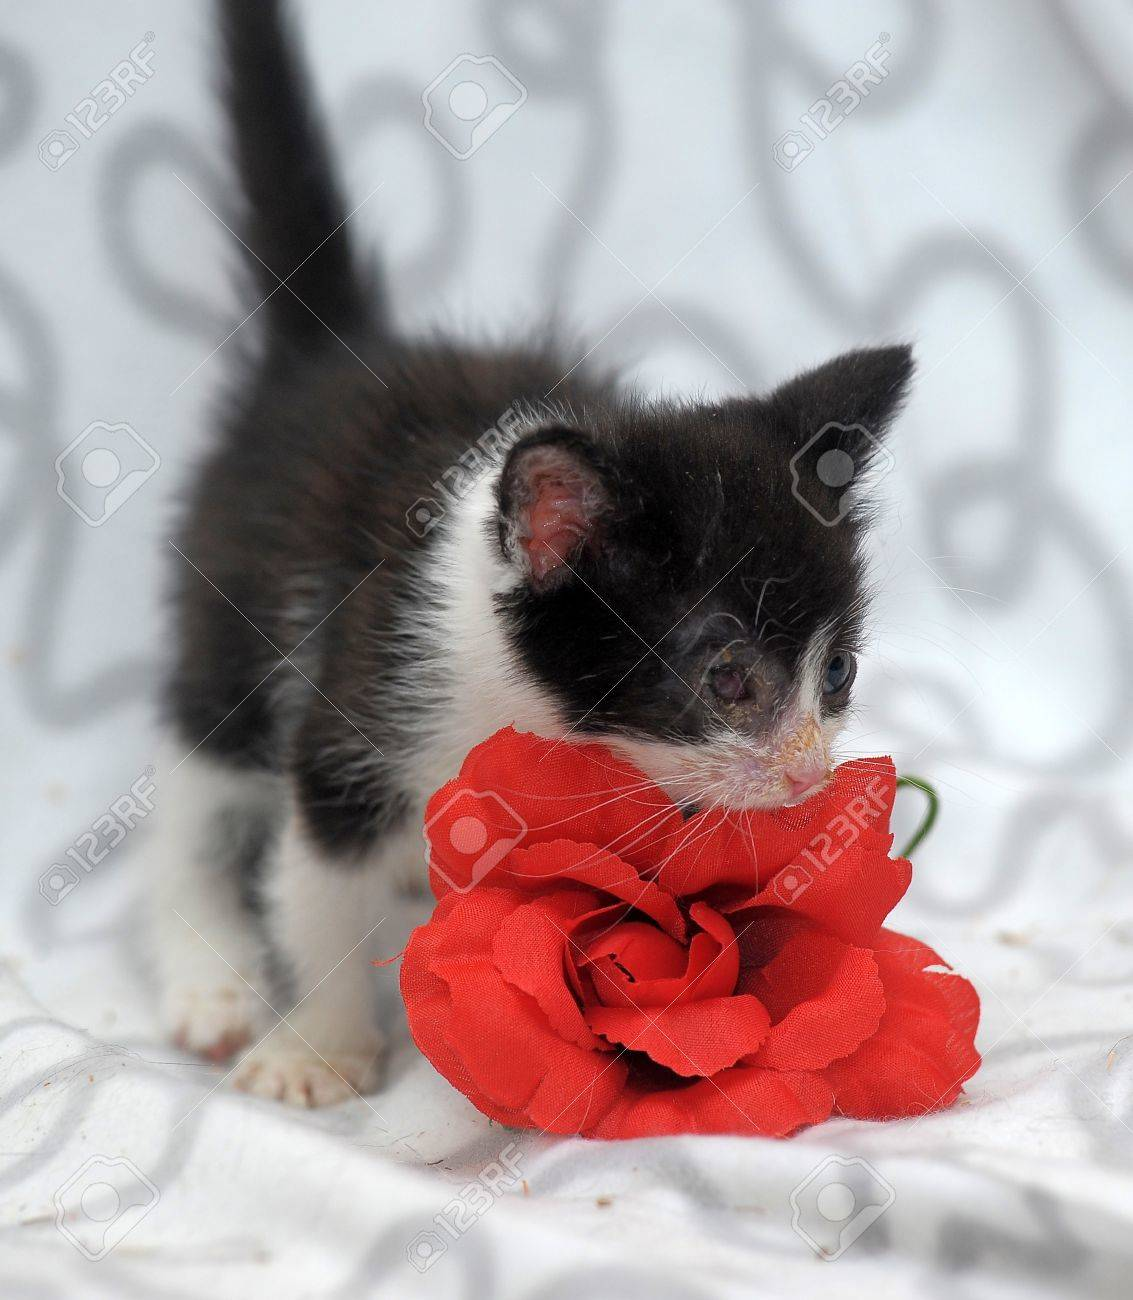 small kitten with diseased eyes rescued zoo defenders Stock Photo - 19605152